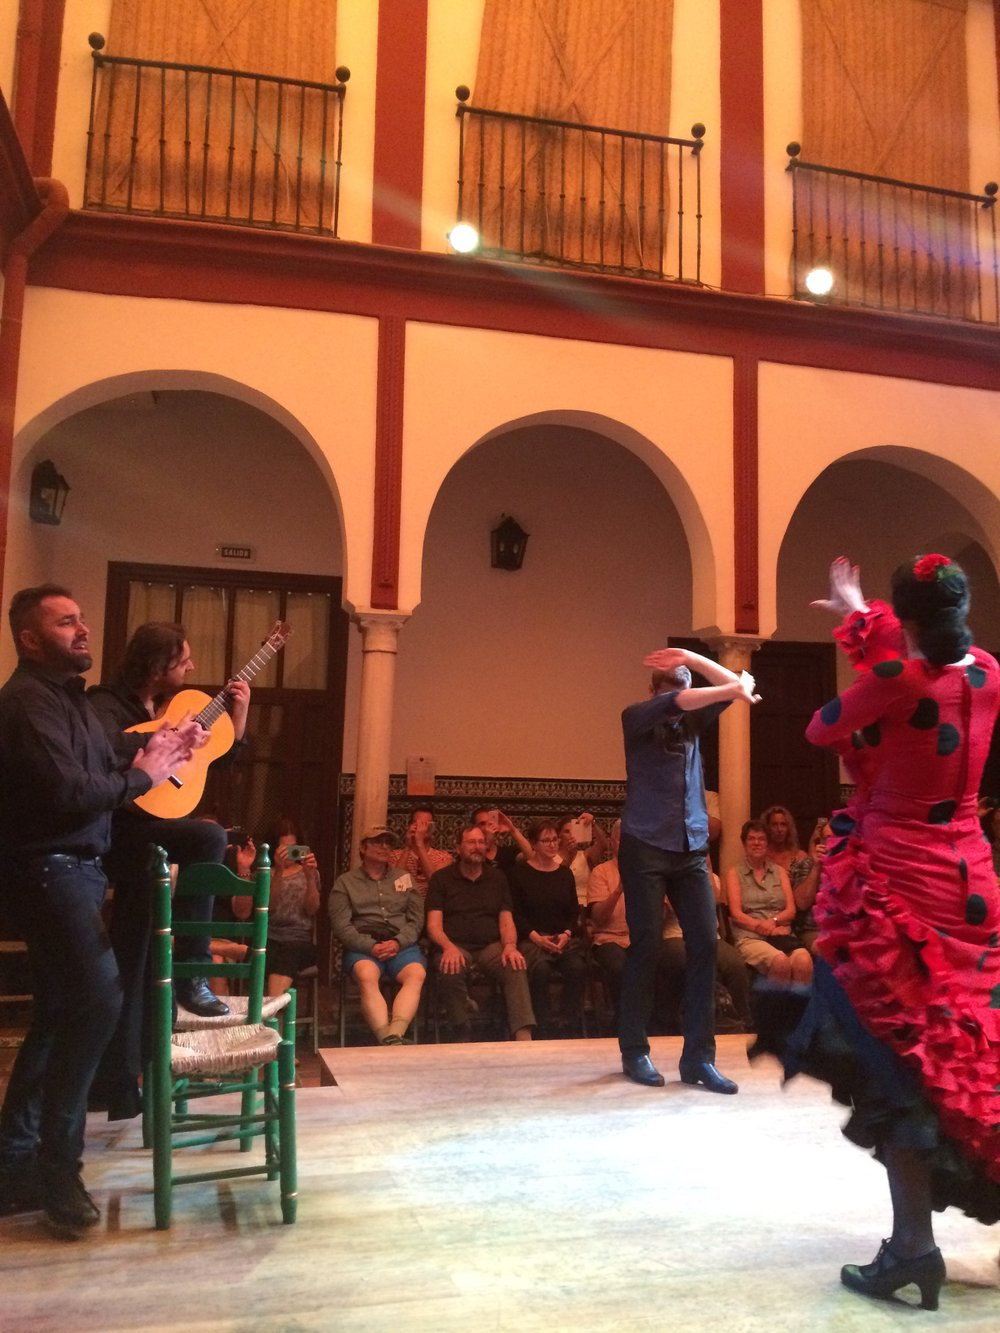 Flamenco. It was totally put on for tourists, but the music was actually great!